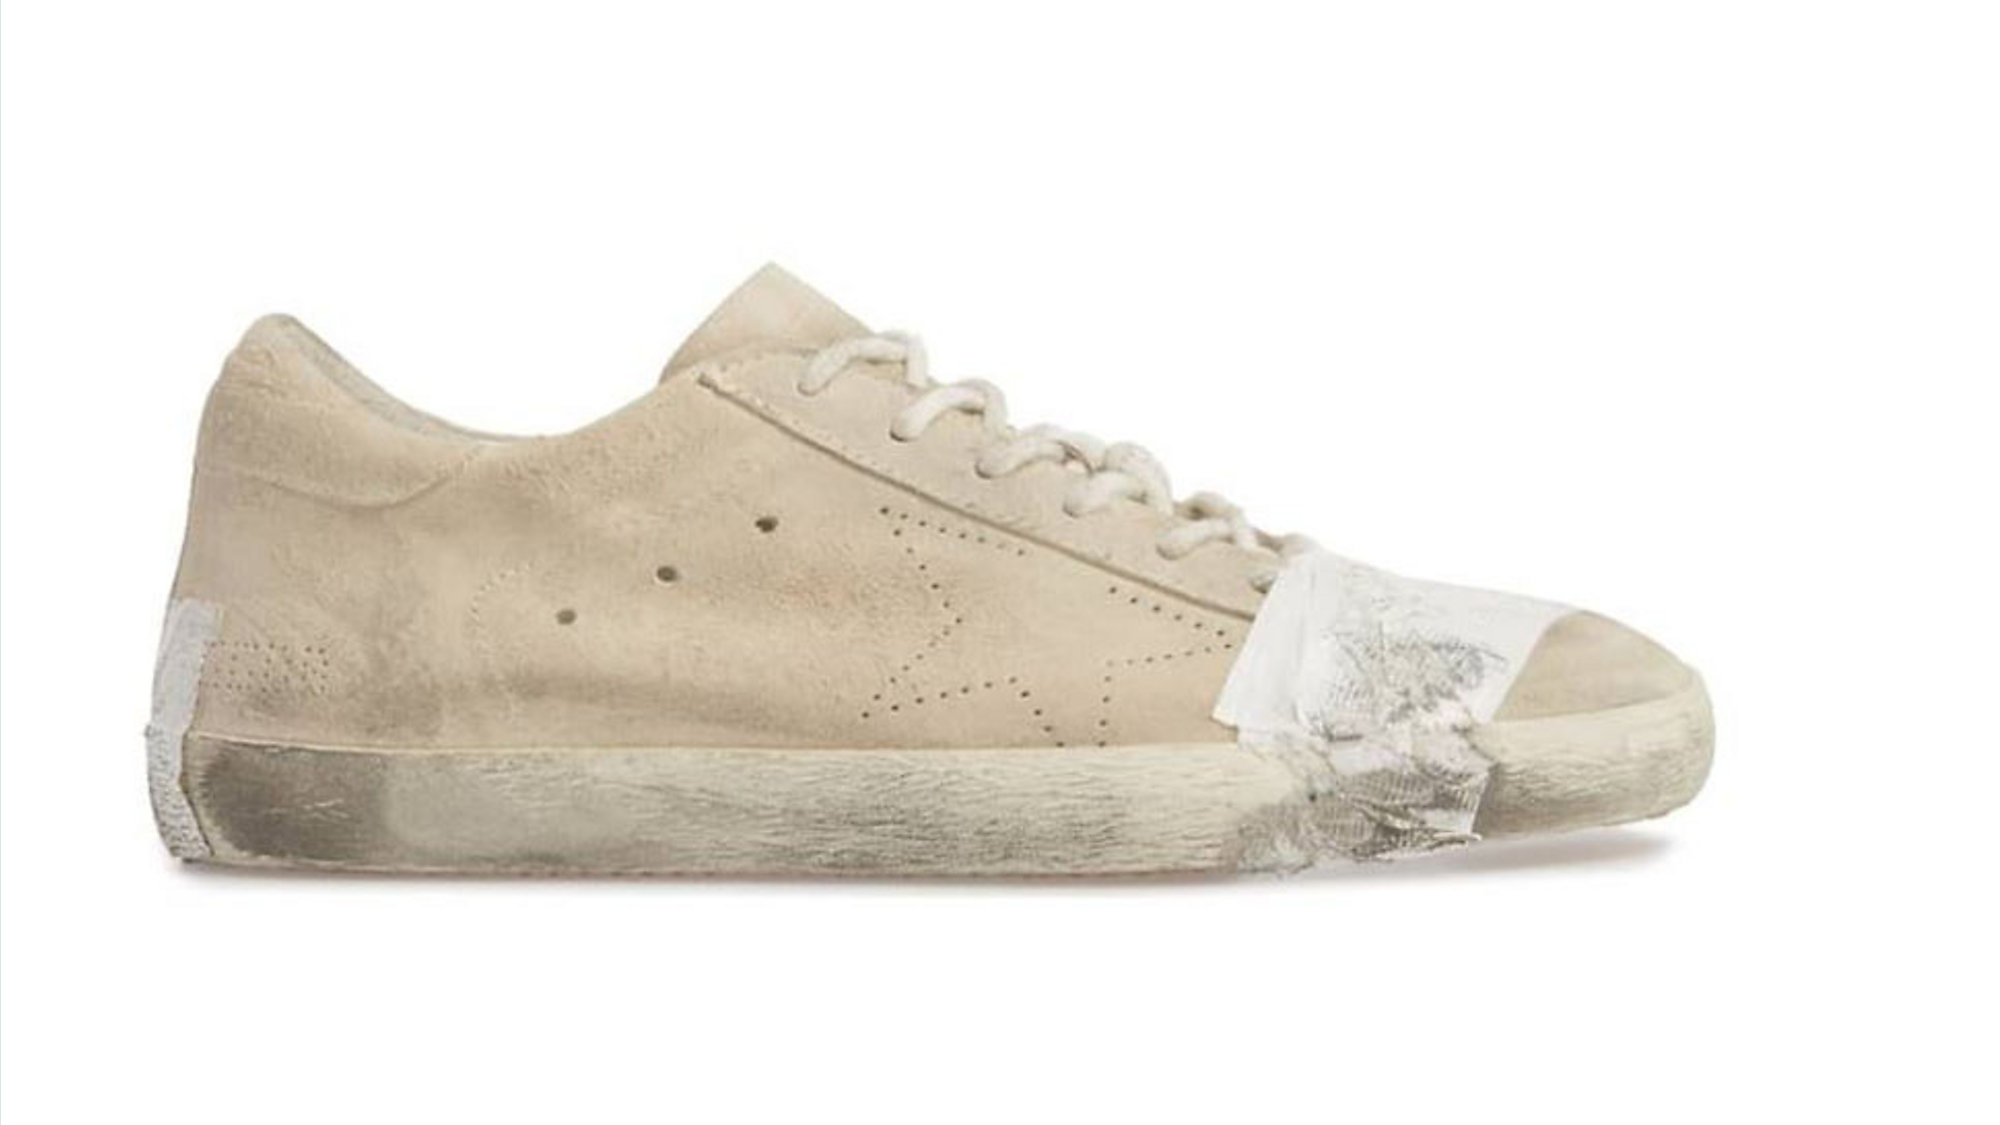 fa7729f2d6b Golden Goose s Superstar Taped Sneaker costs  530. (Nordstrom)